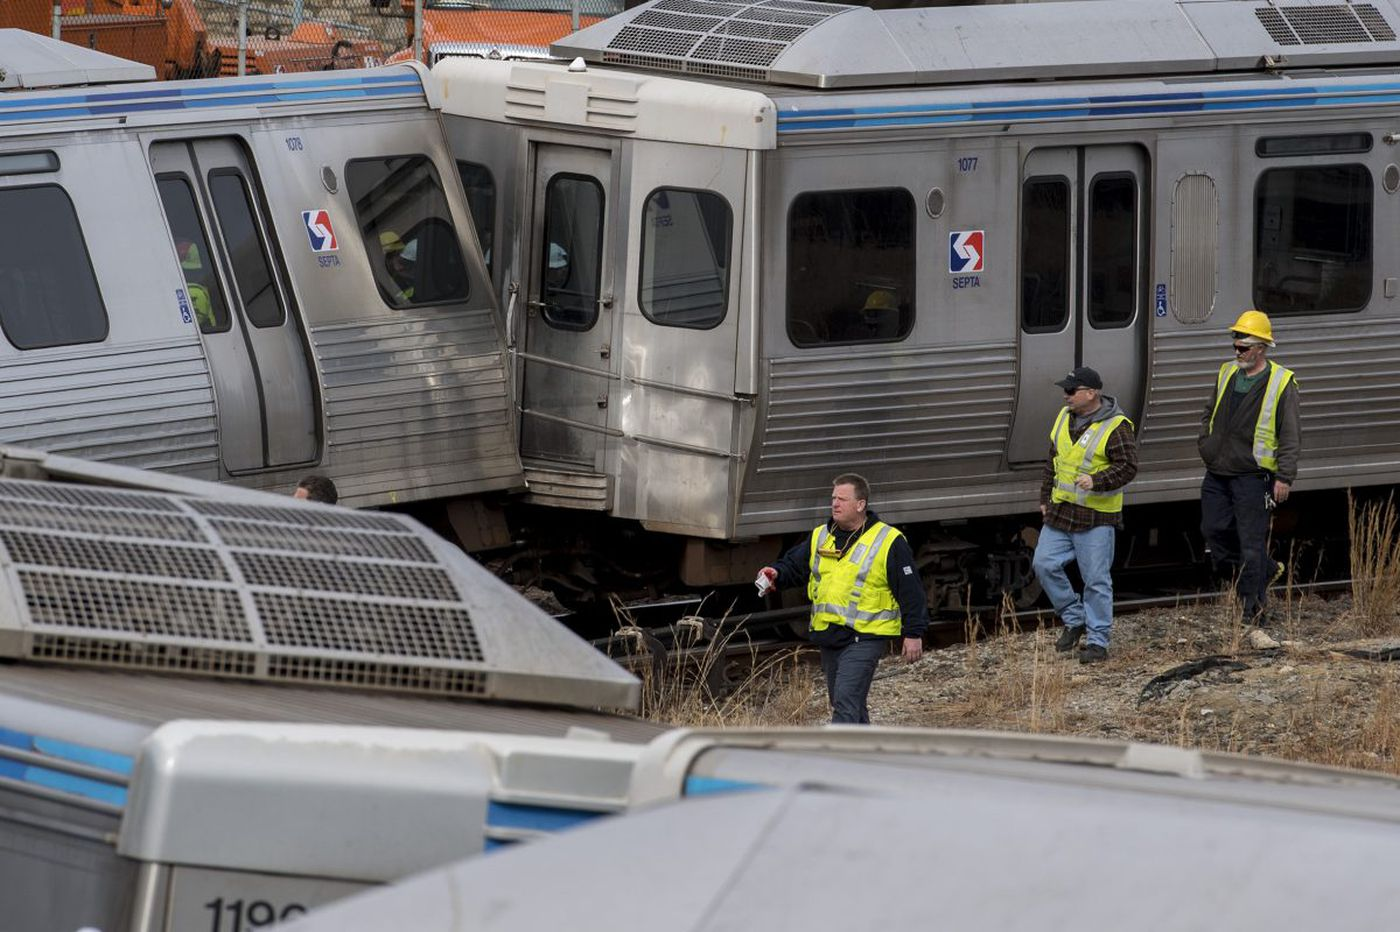 SEPTA should install cameras to monitor train operators, federal agency says